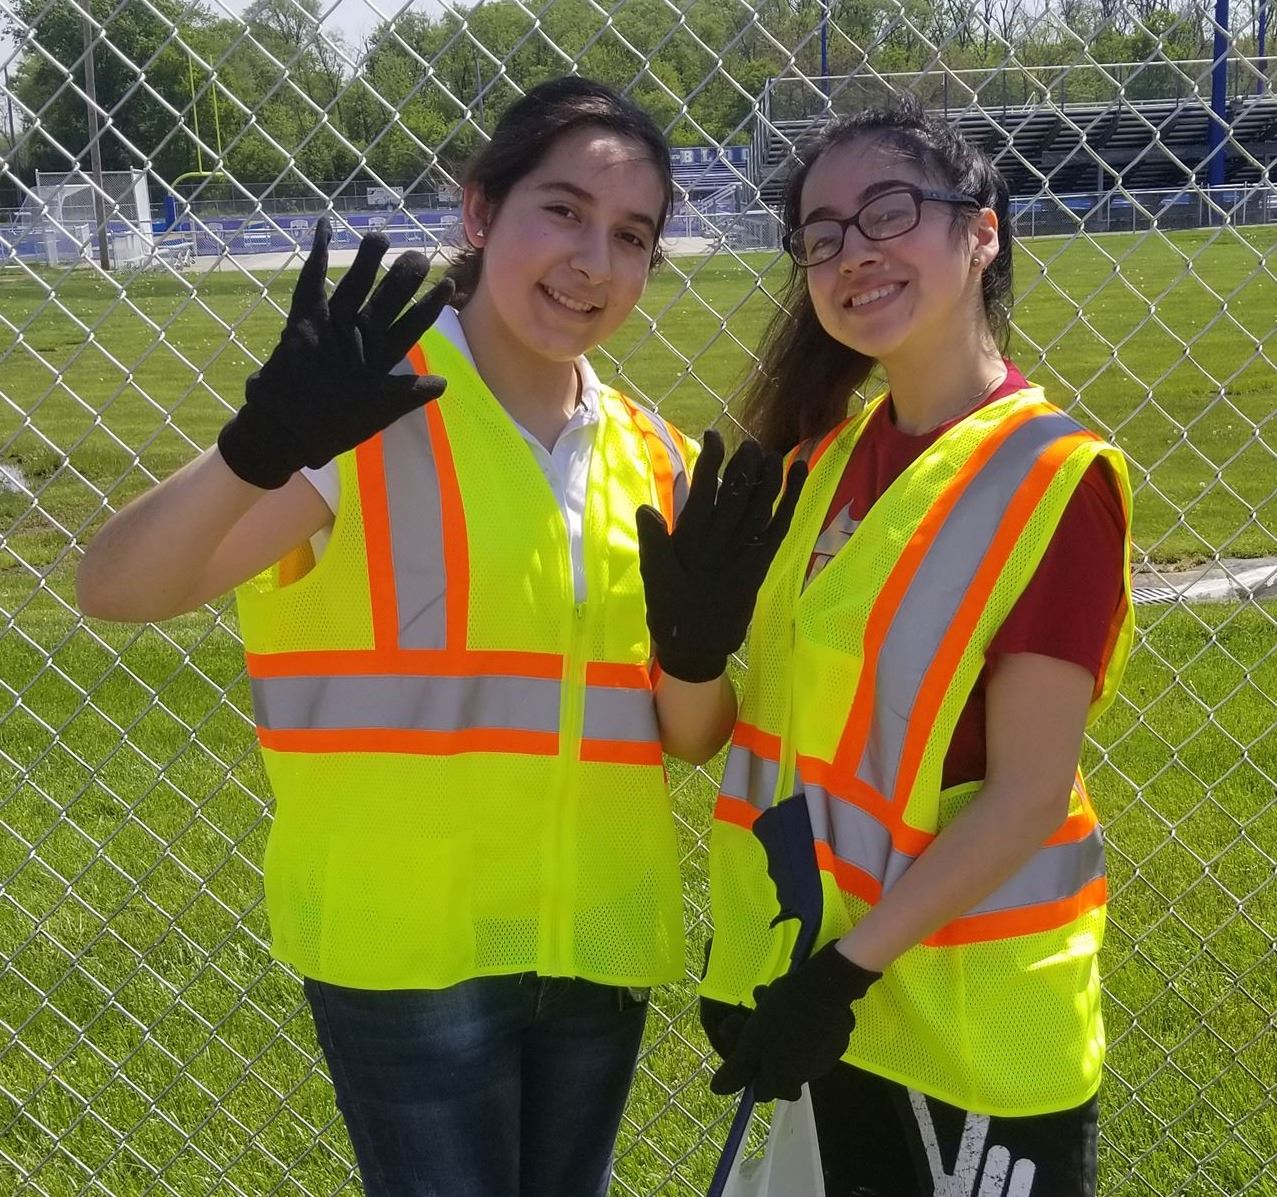 Two Bloom Township High School Students Volunteer on Clean-Up Day, Saturday, May 18, 2019!